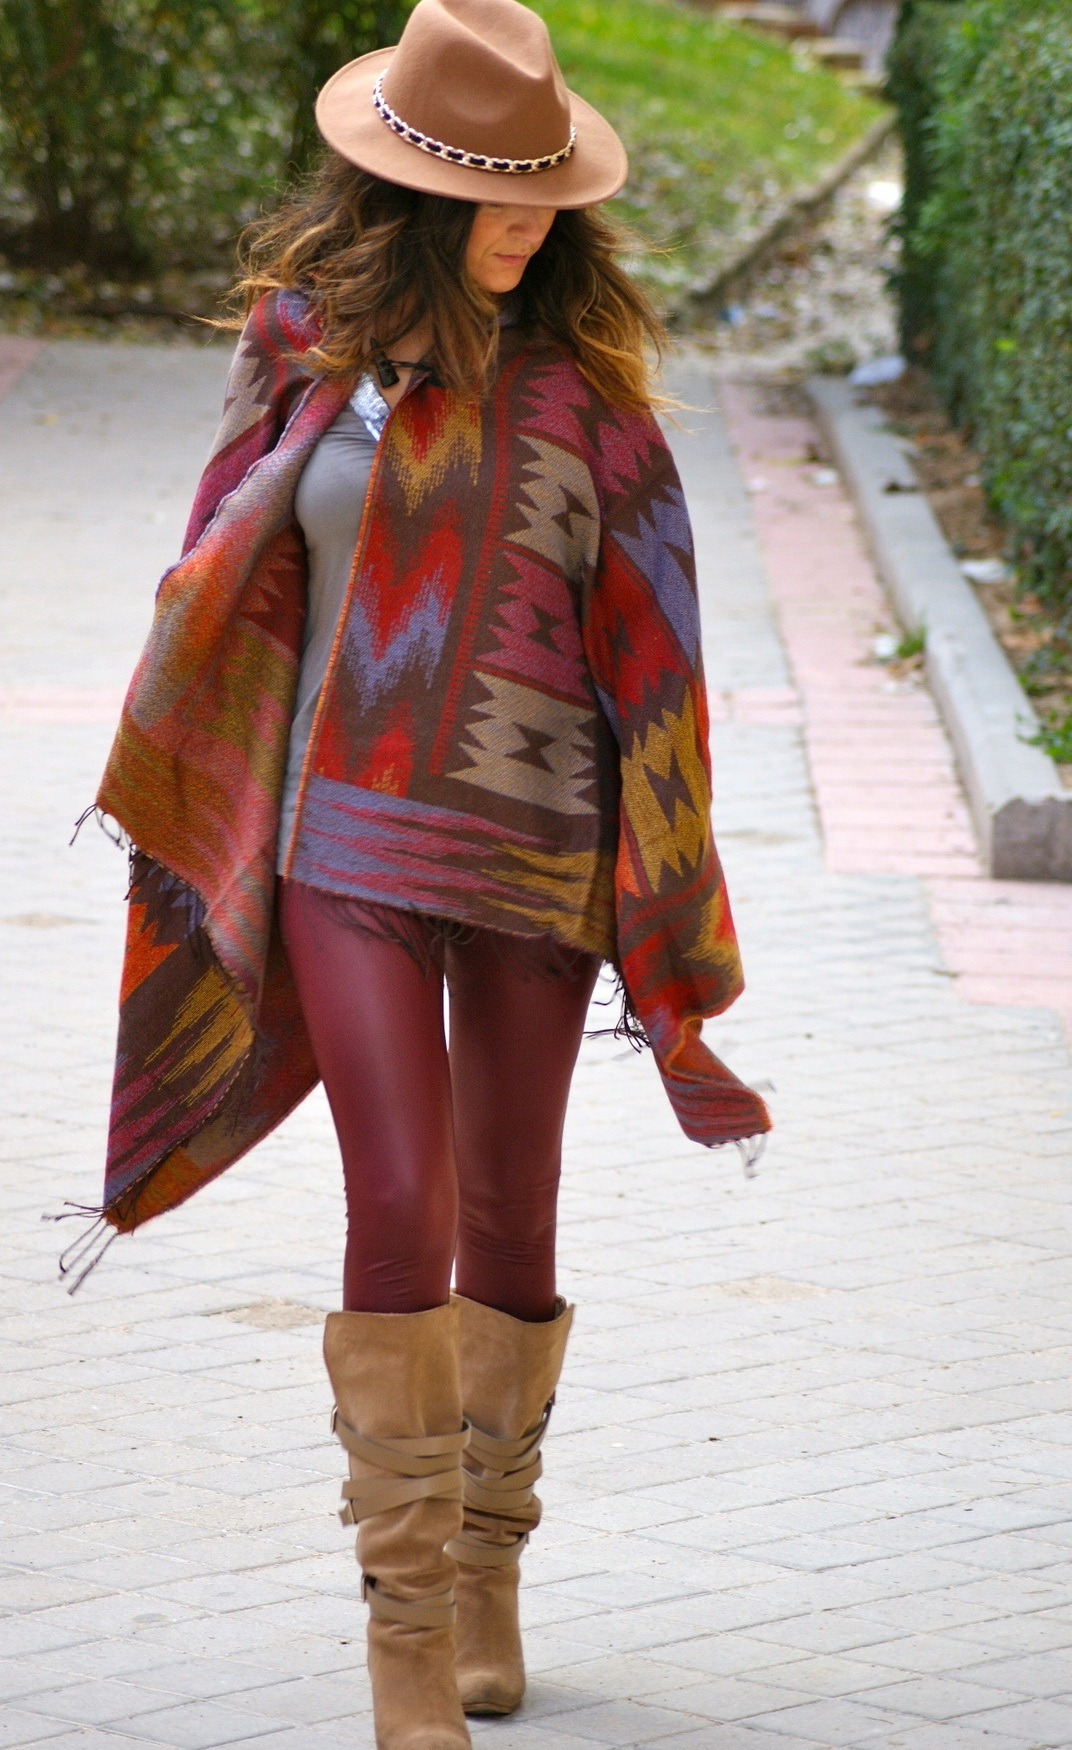 Poncho Outfit Ideas 2019